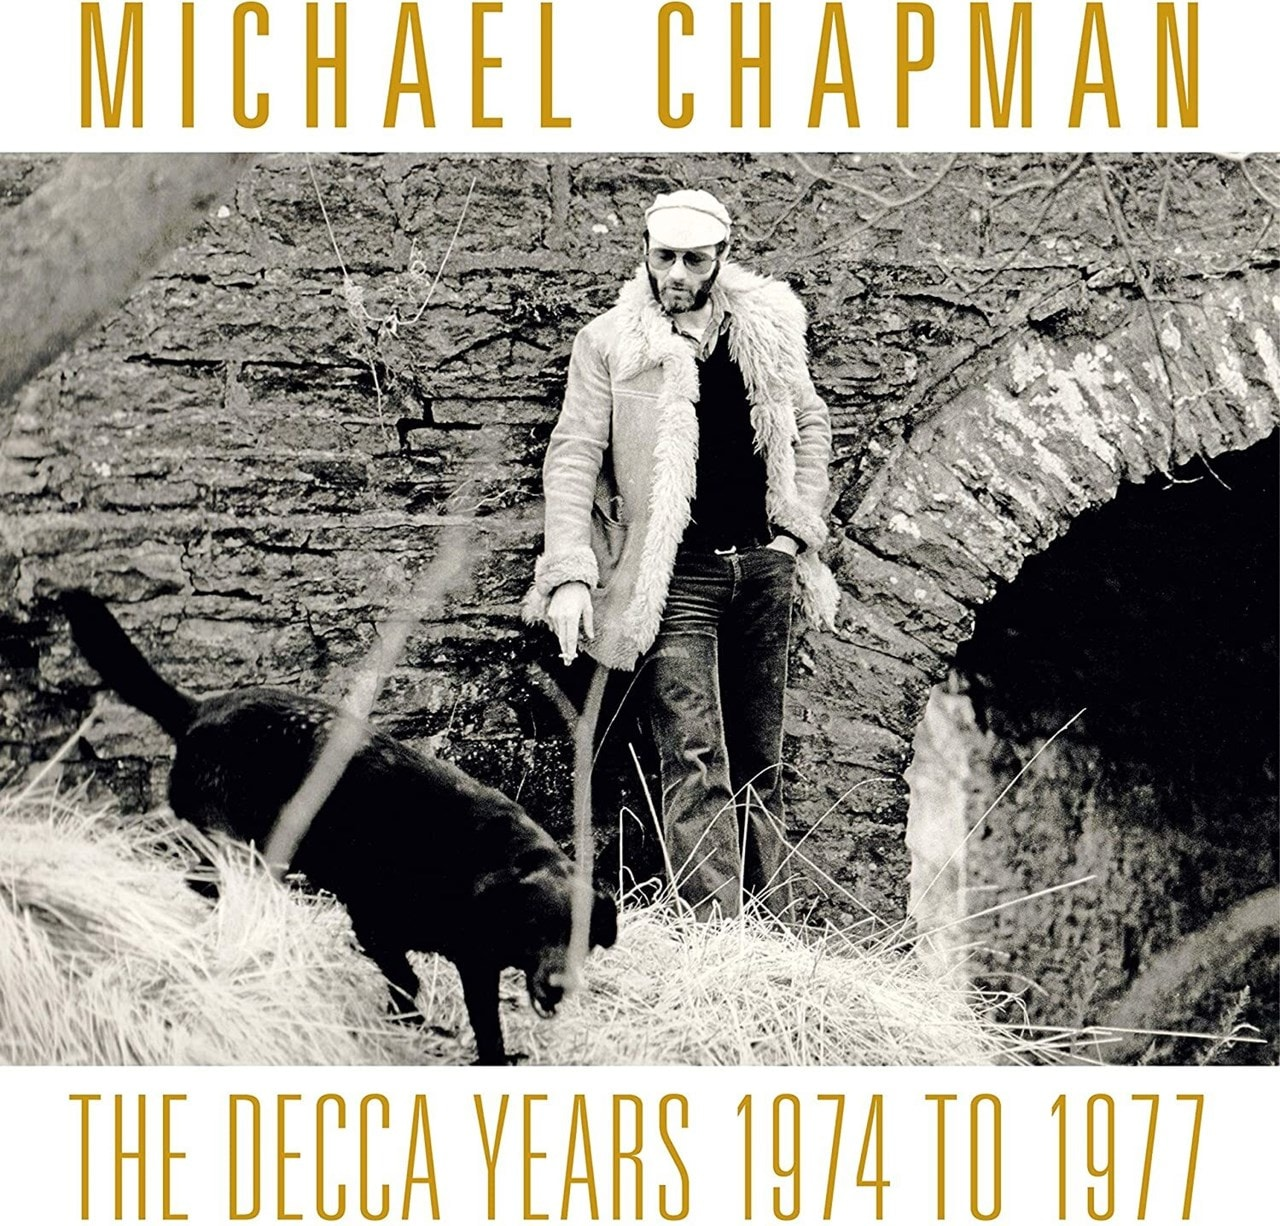 The Decca Years 1974 to 1977 - 1